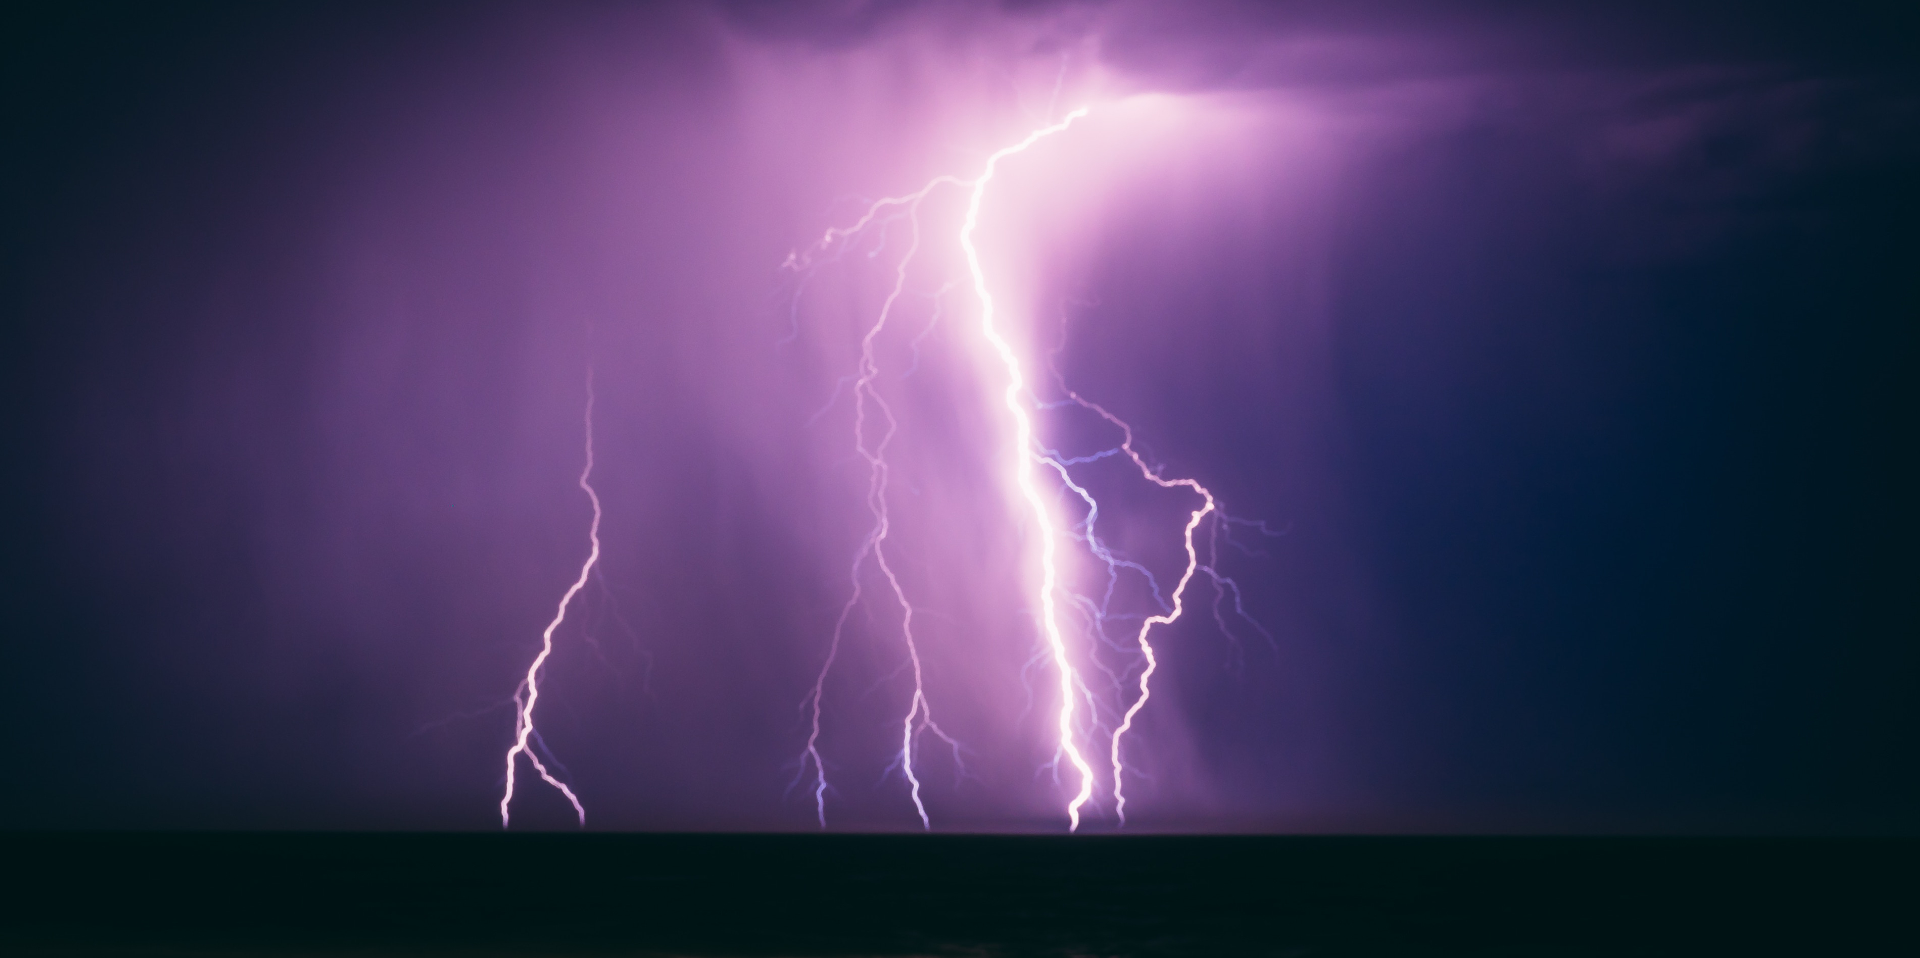 10 striking facts about lightning